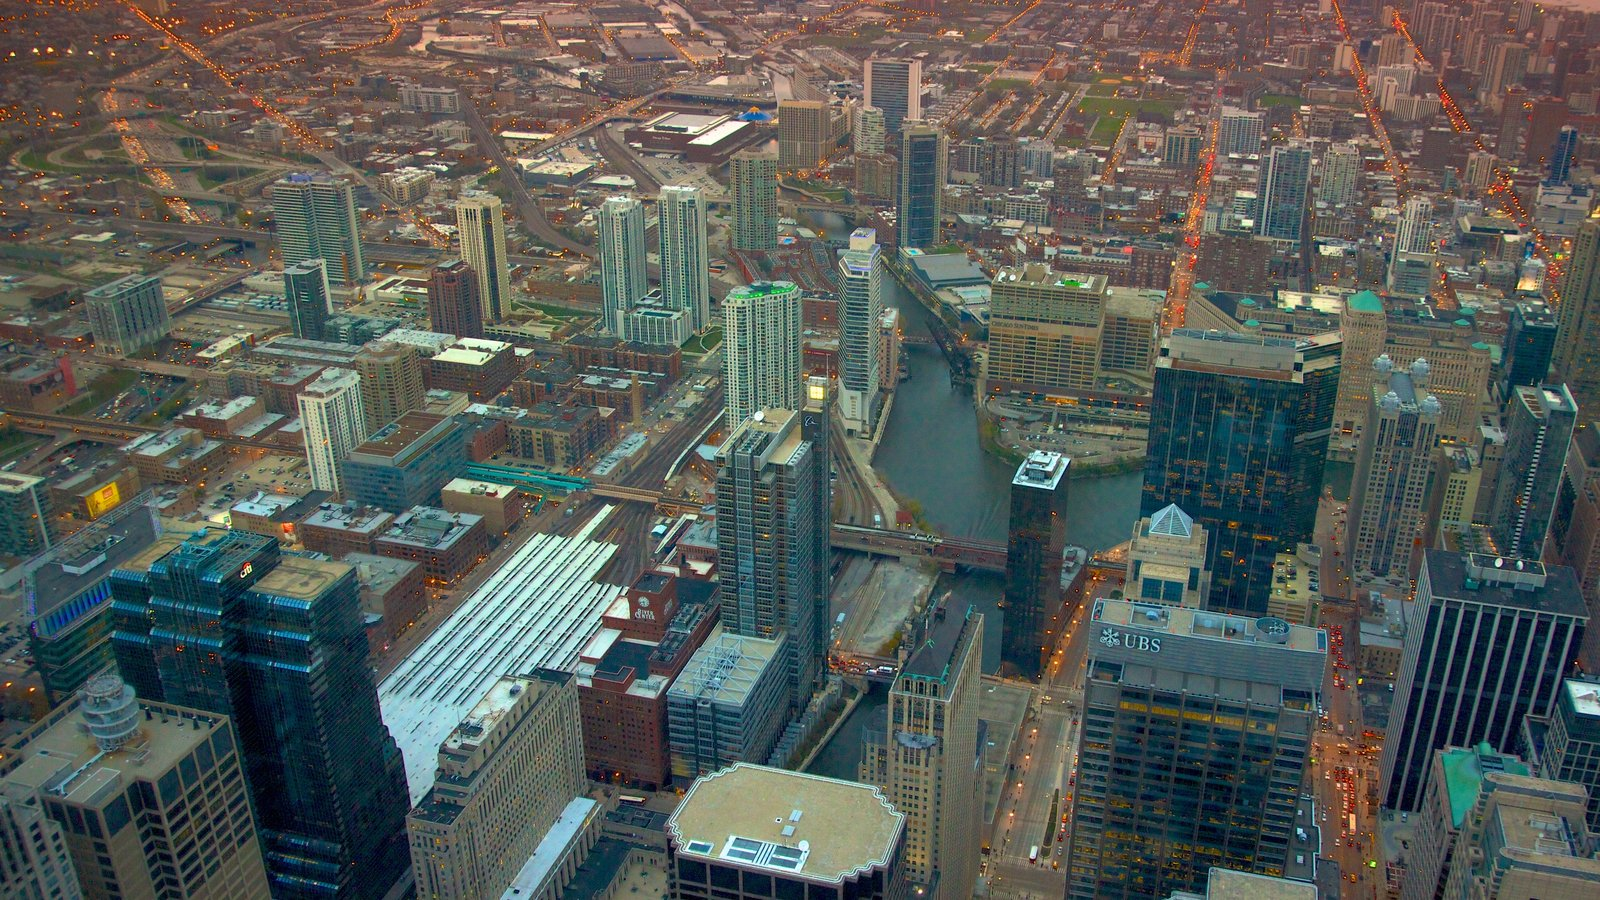 Willis Tower showing a city, modern architecture and city views